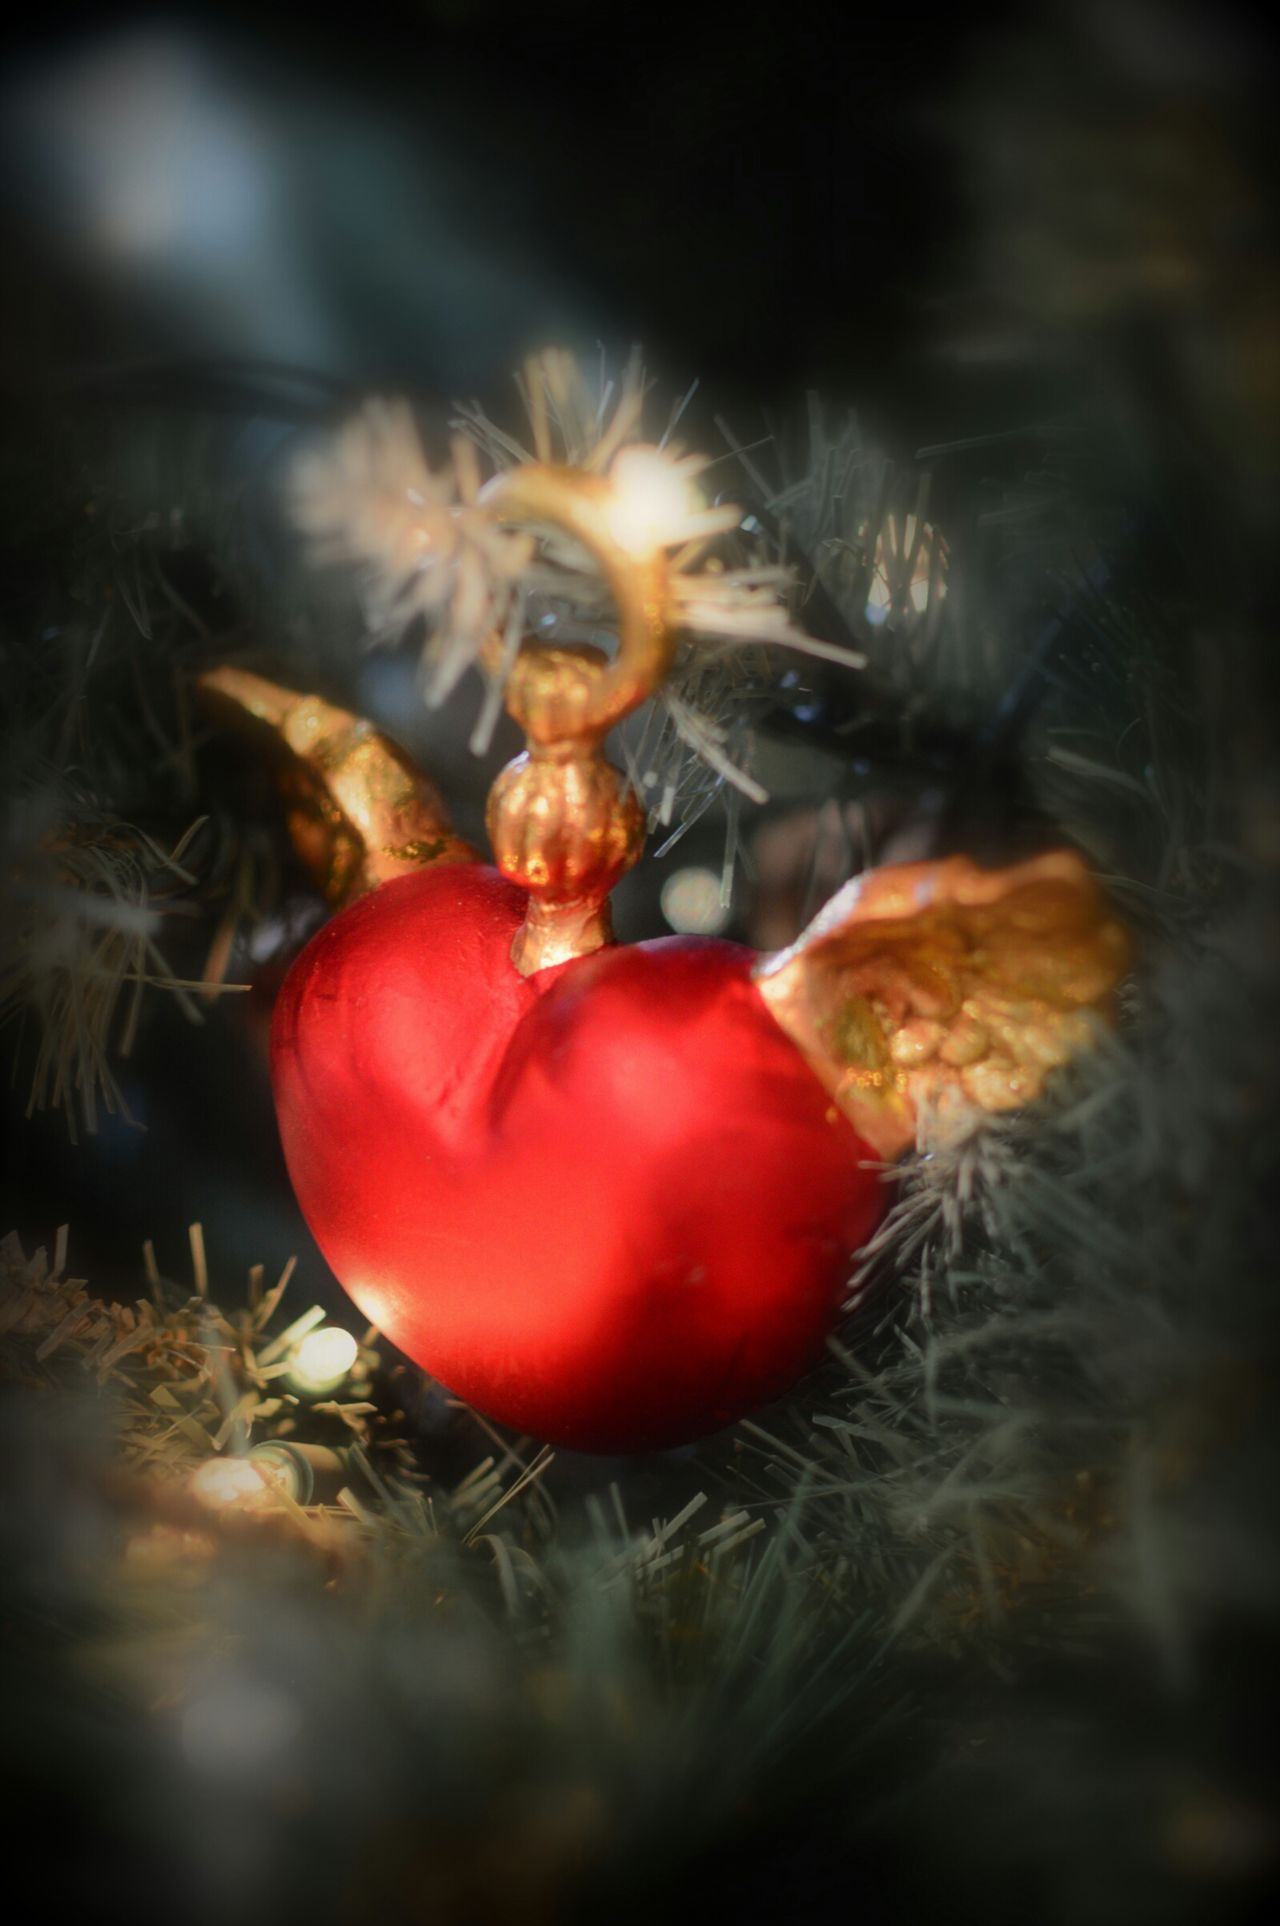 """On the first day of Christmas my true love gave to me, 1 gold winged heart. "" :) ♥ ♥ ♥ Heart Heart ❤ Hearts Christmas Decorations Xmas Christmas Tree Gifts ❤ Special Gift"